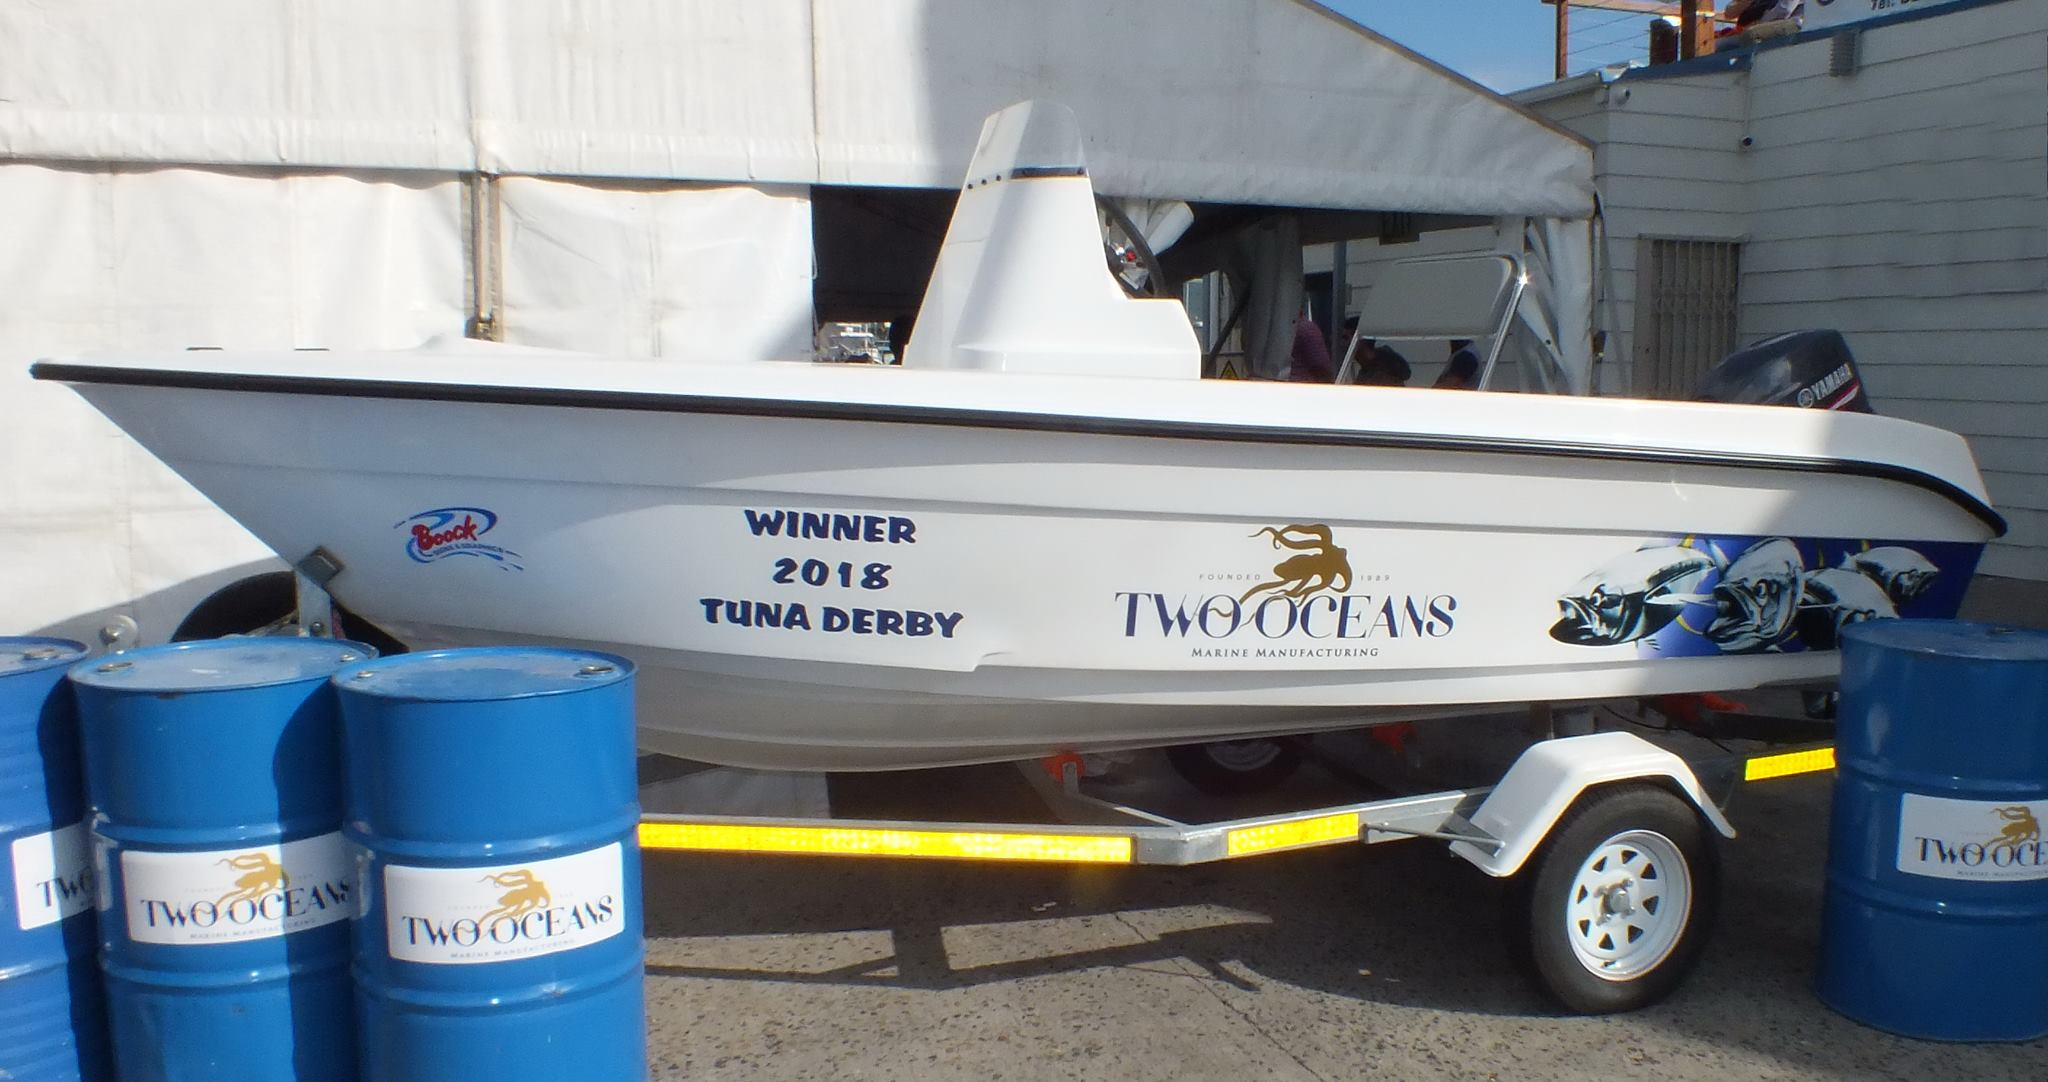 two oceans tuna derby 2018 - 1st Prize